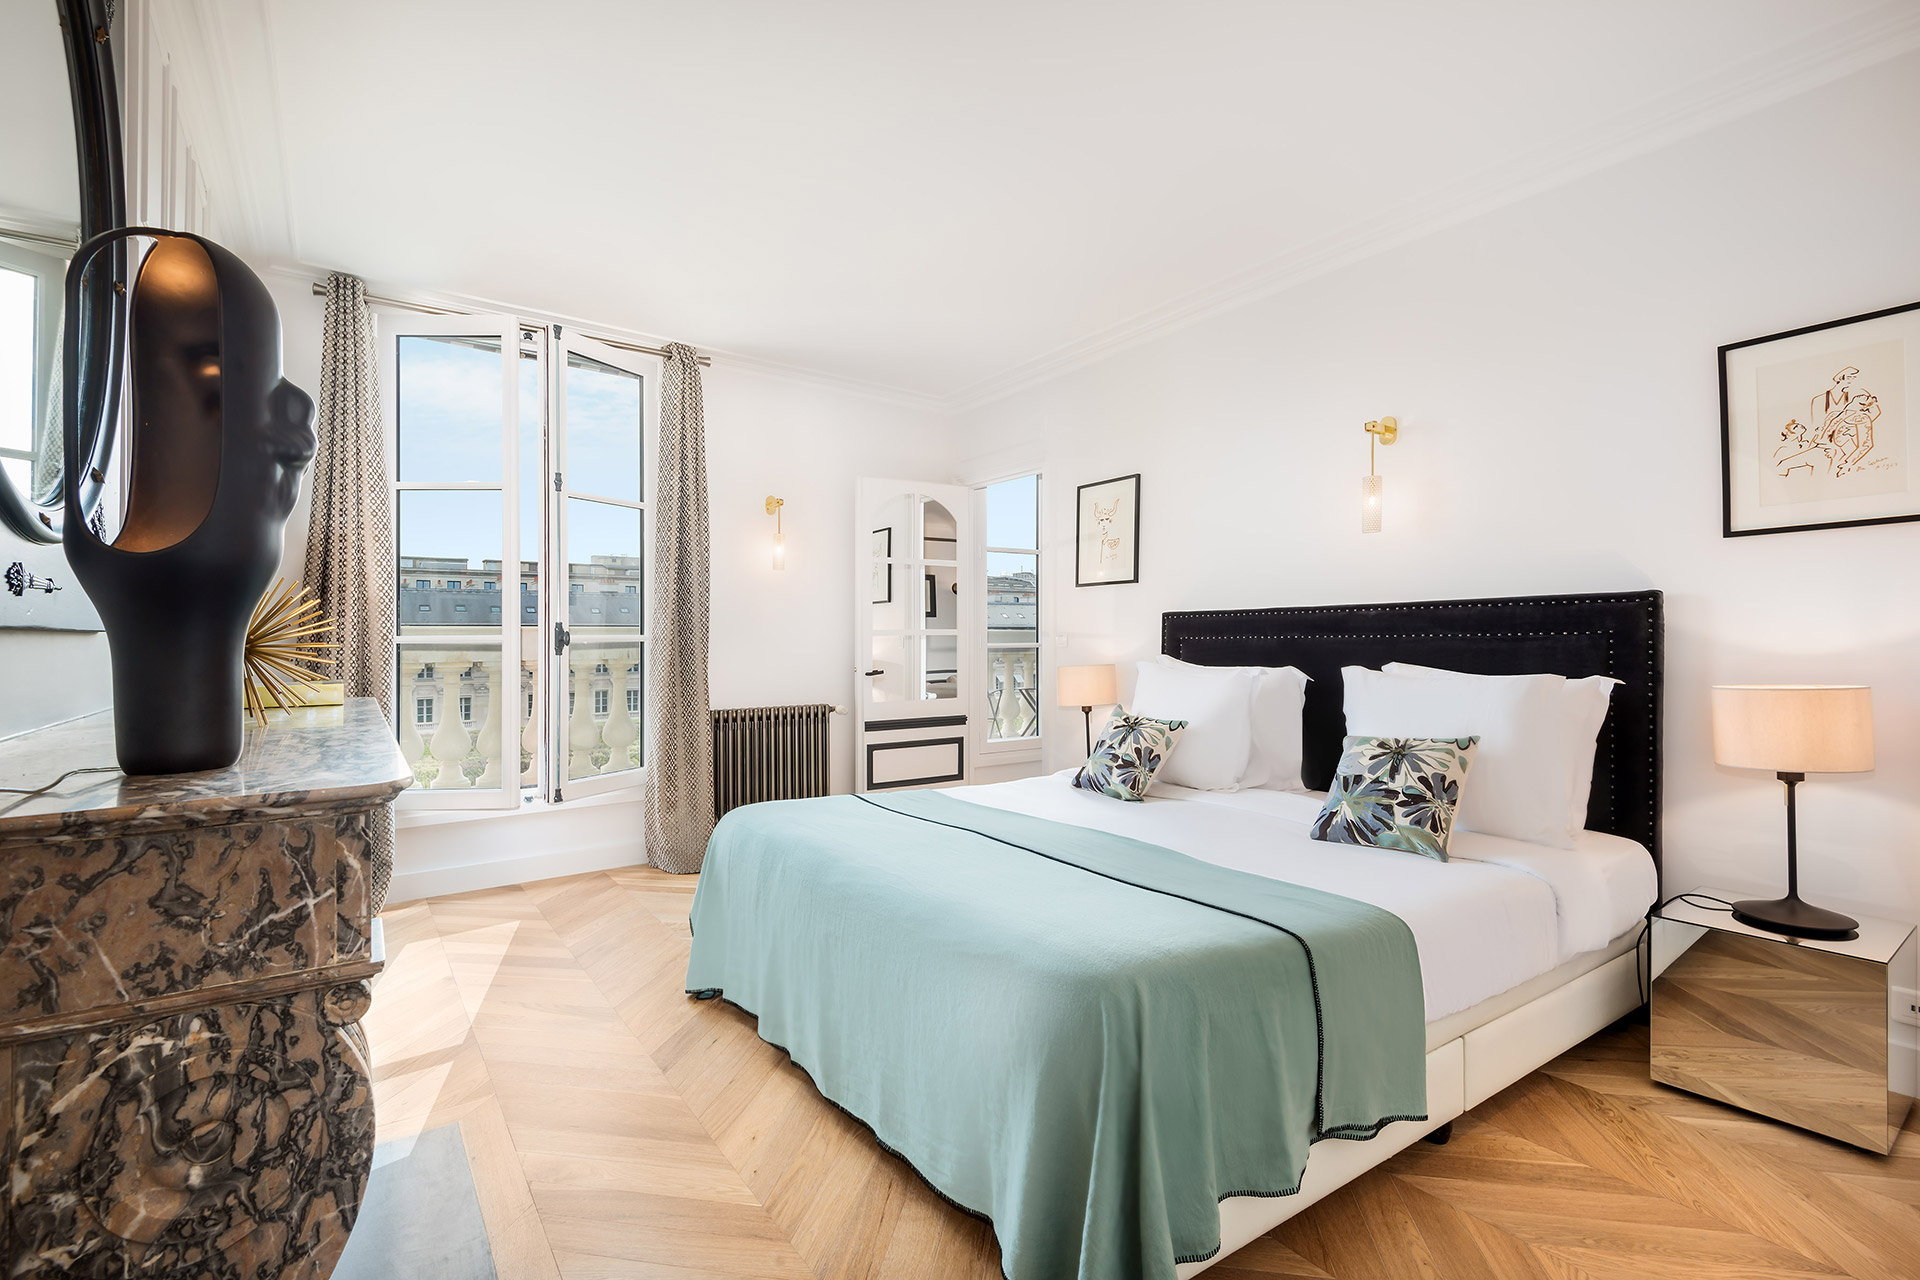 Large bedroom 1 in the Chevalier vacation rental by Paris Perfect